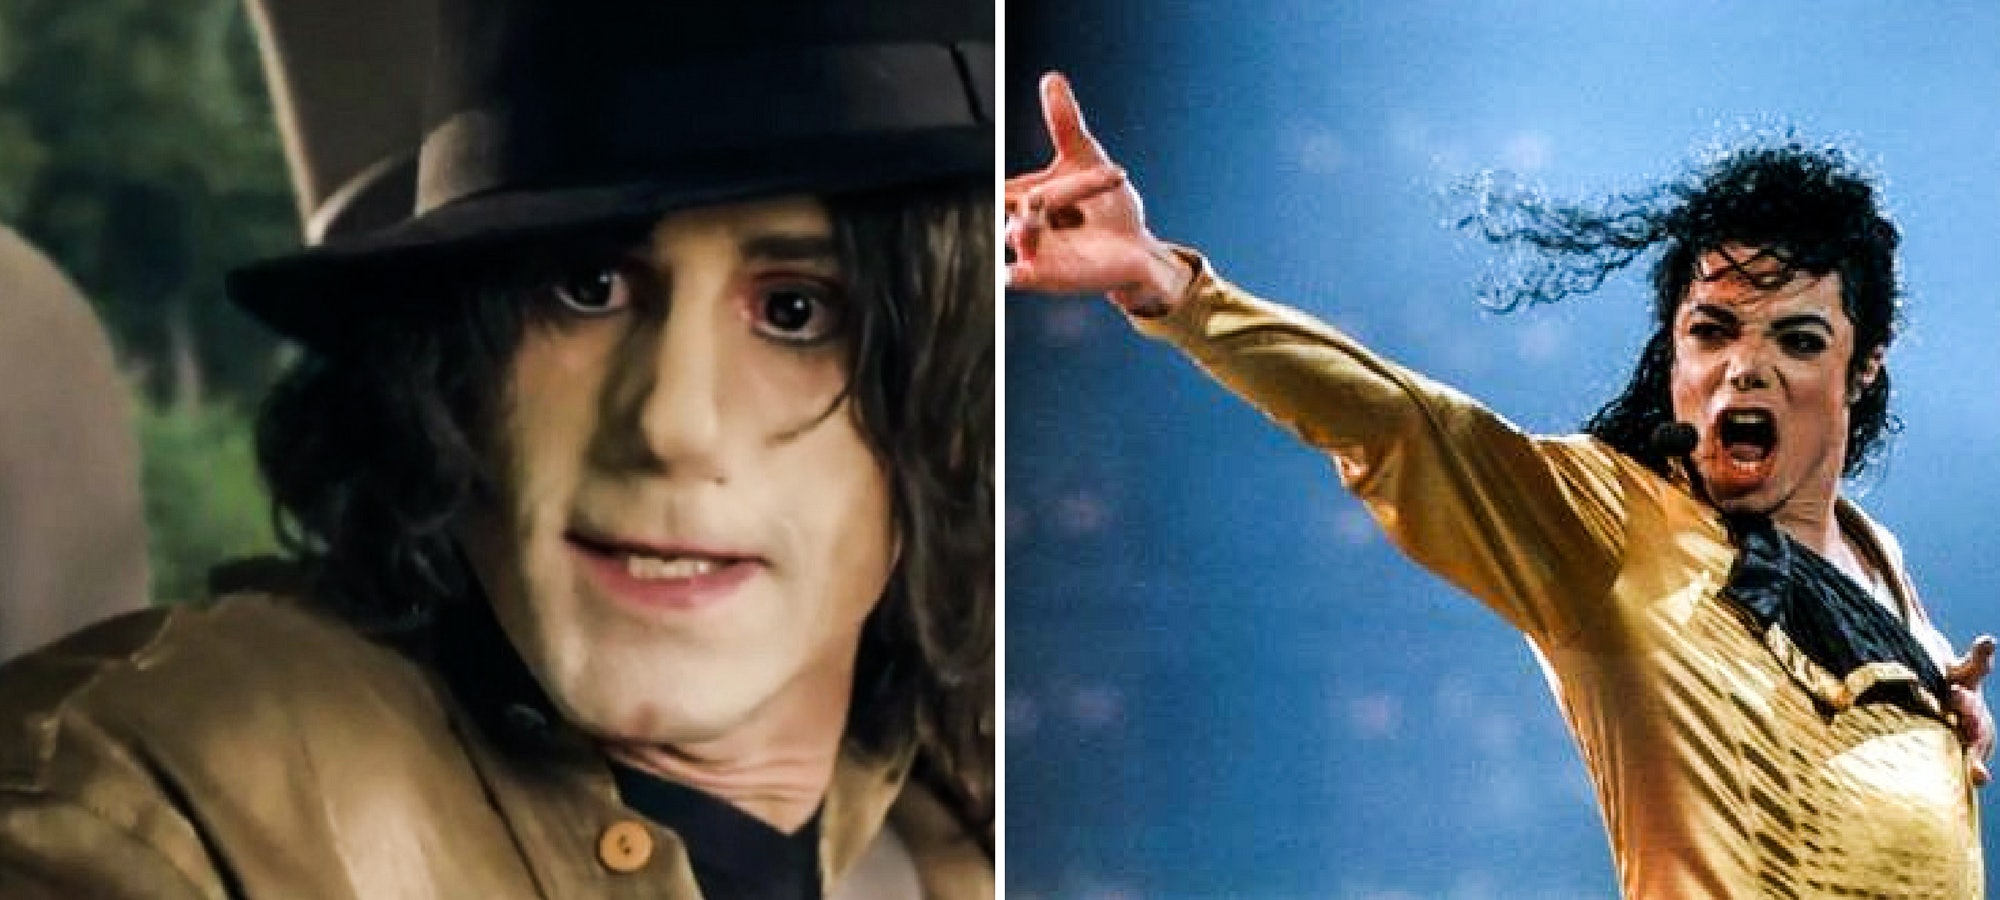 Joseph Fiennes as Michael Jackson.